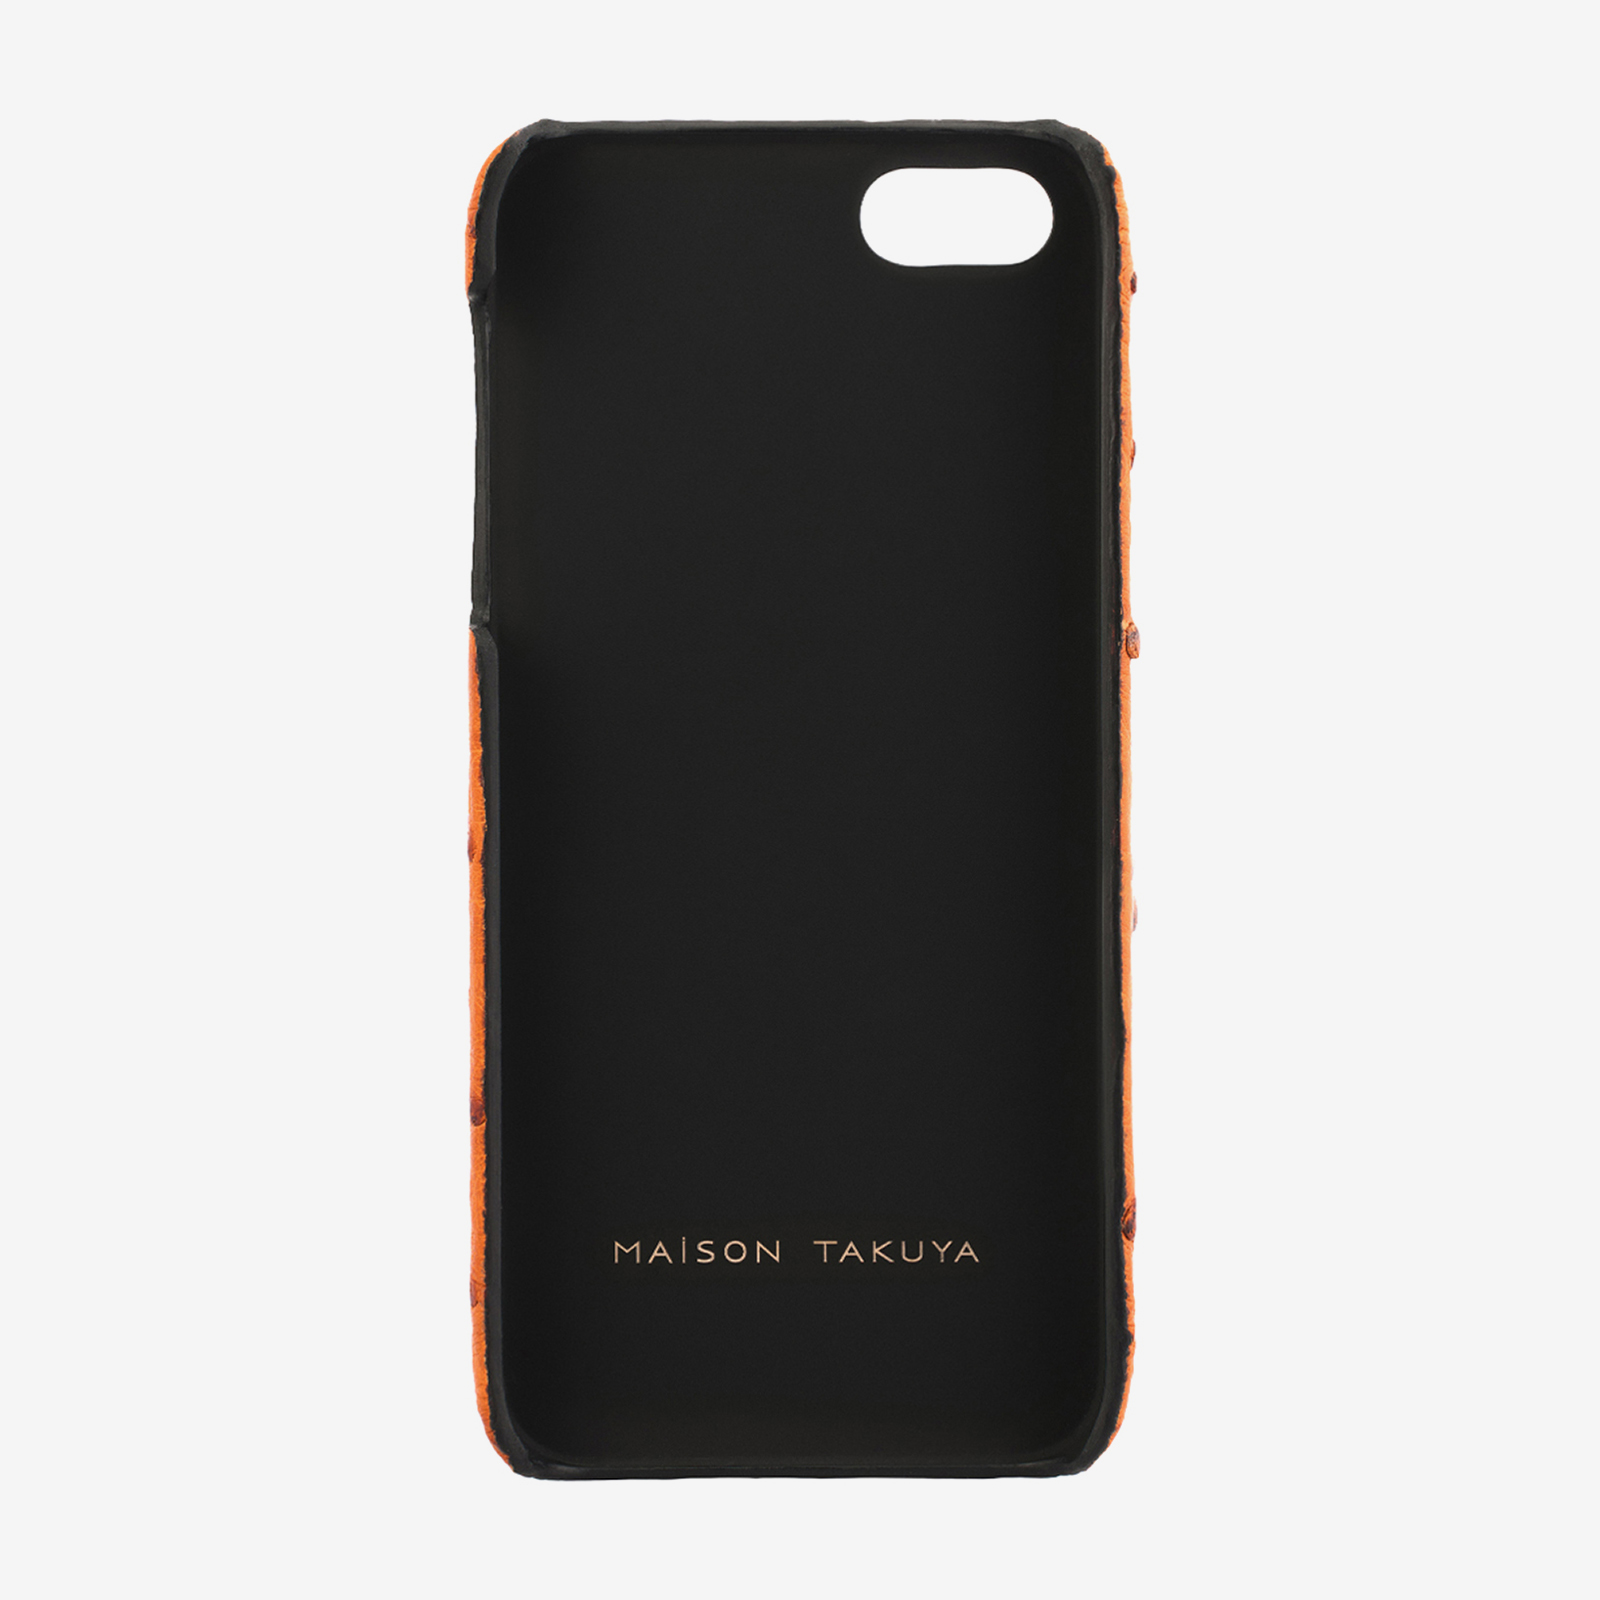 Iphone case product photography